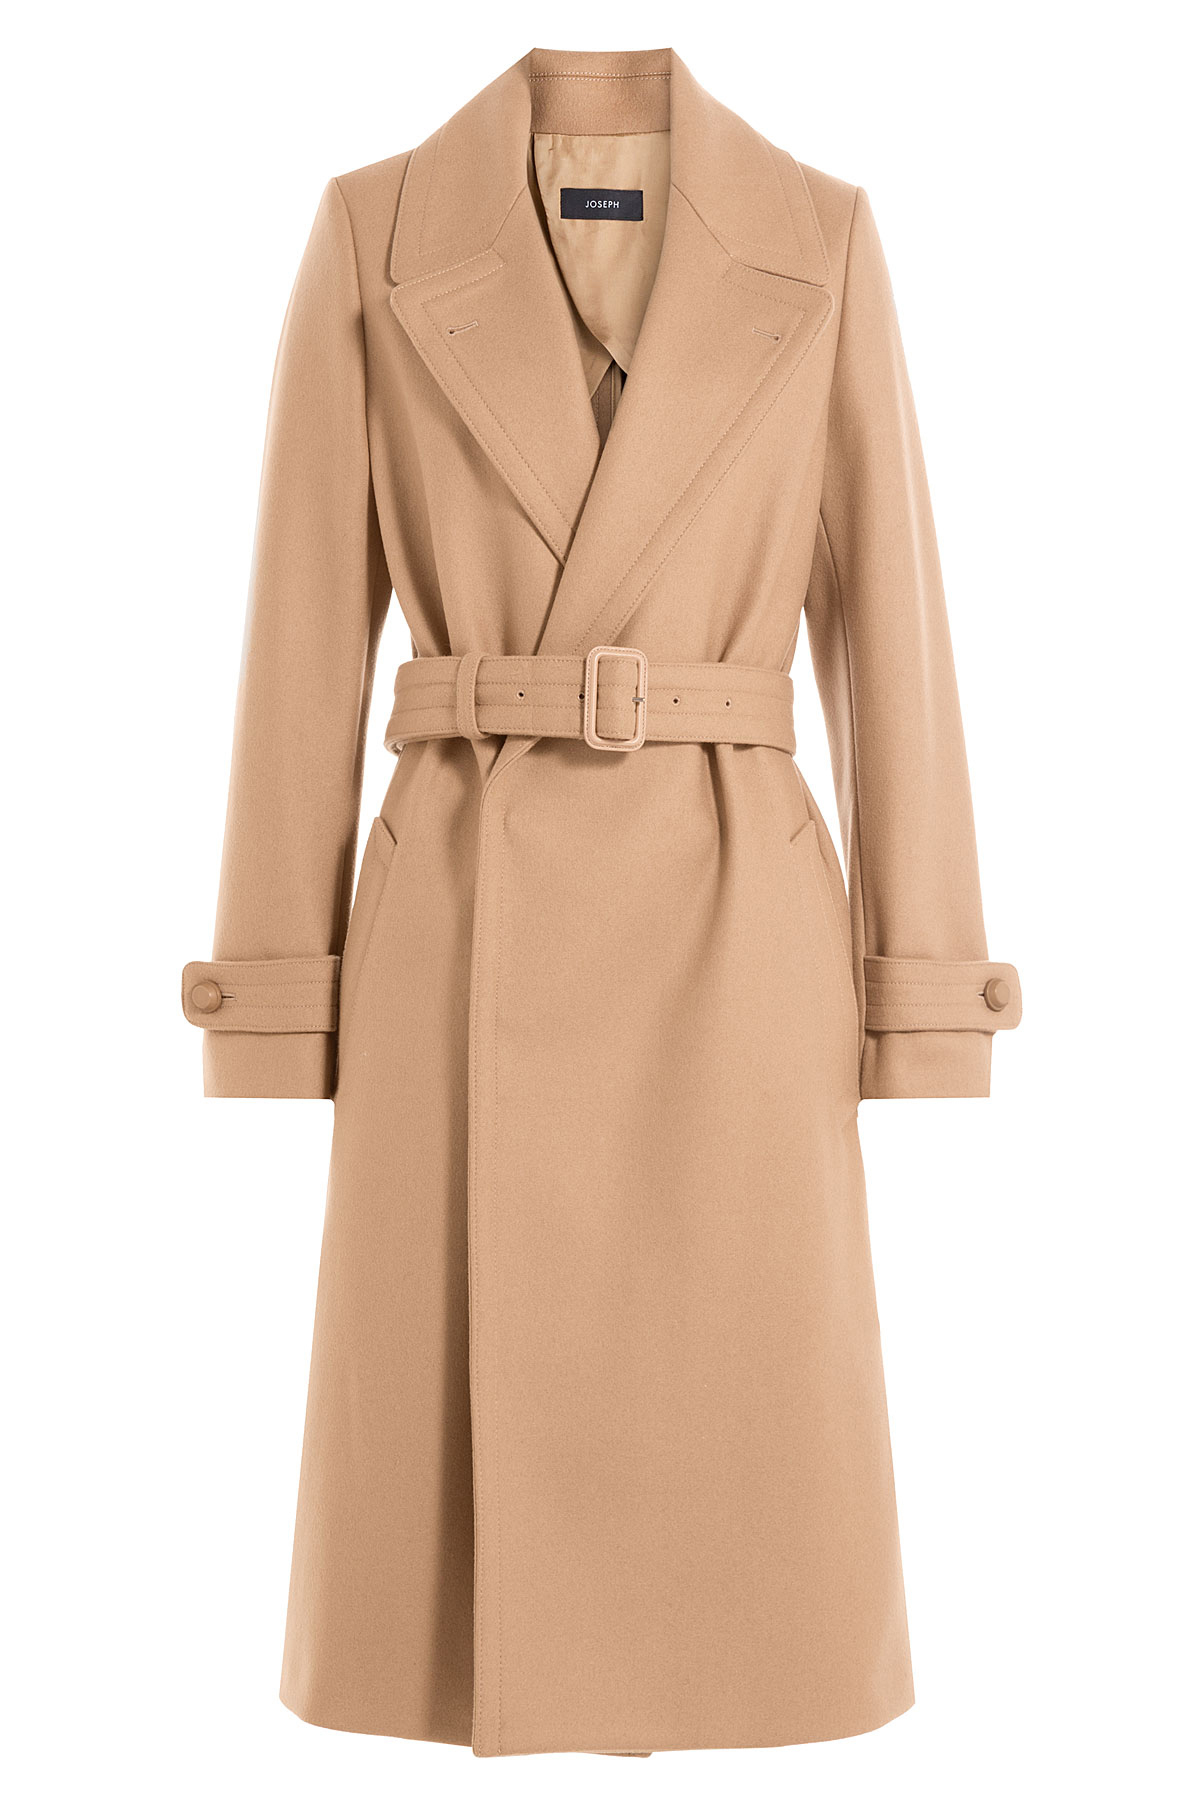 Find great deals on eBay for womens camel wool coat. Shop with confidence.